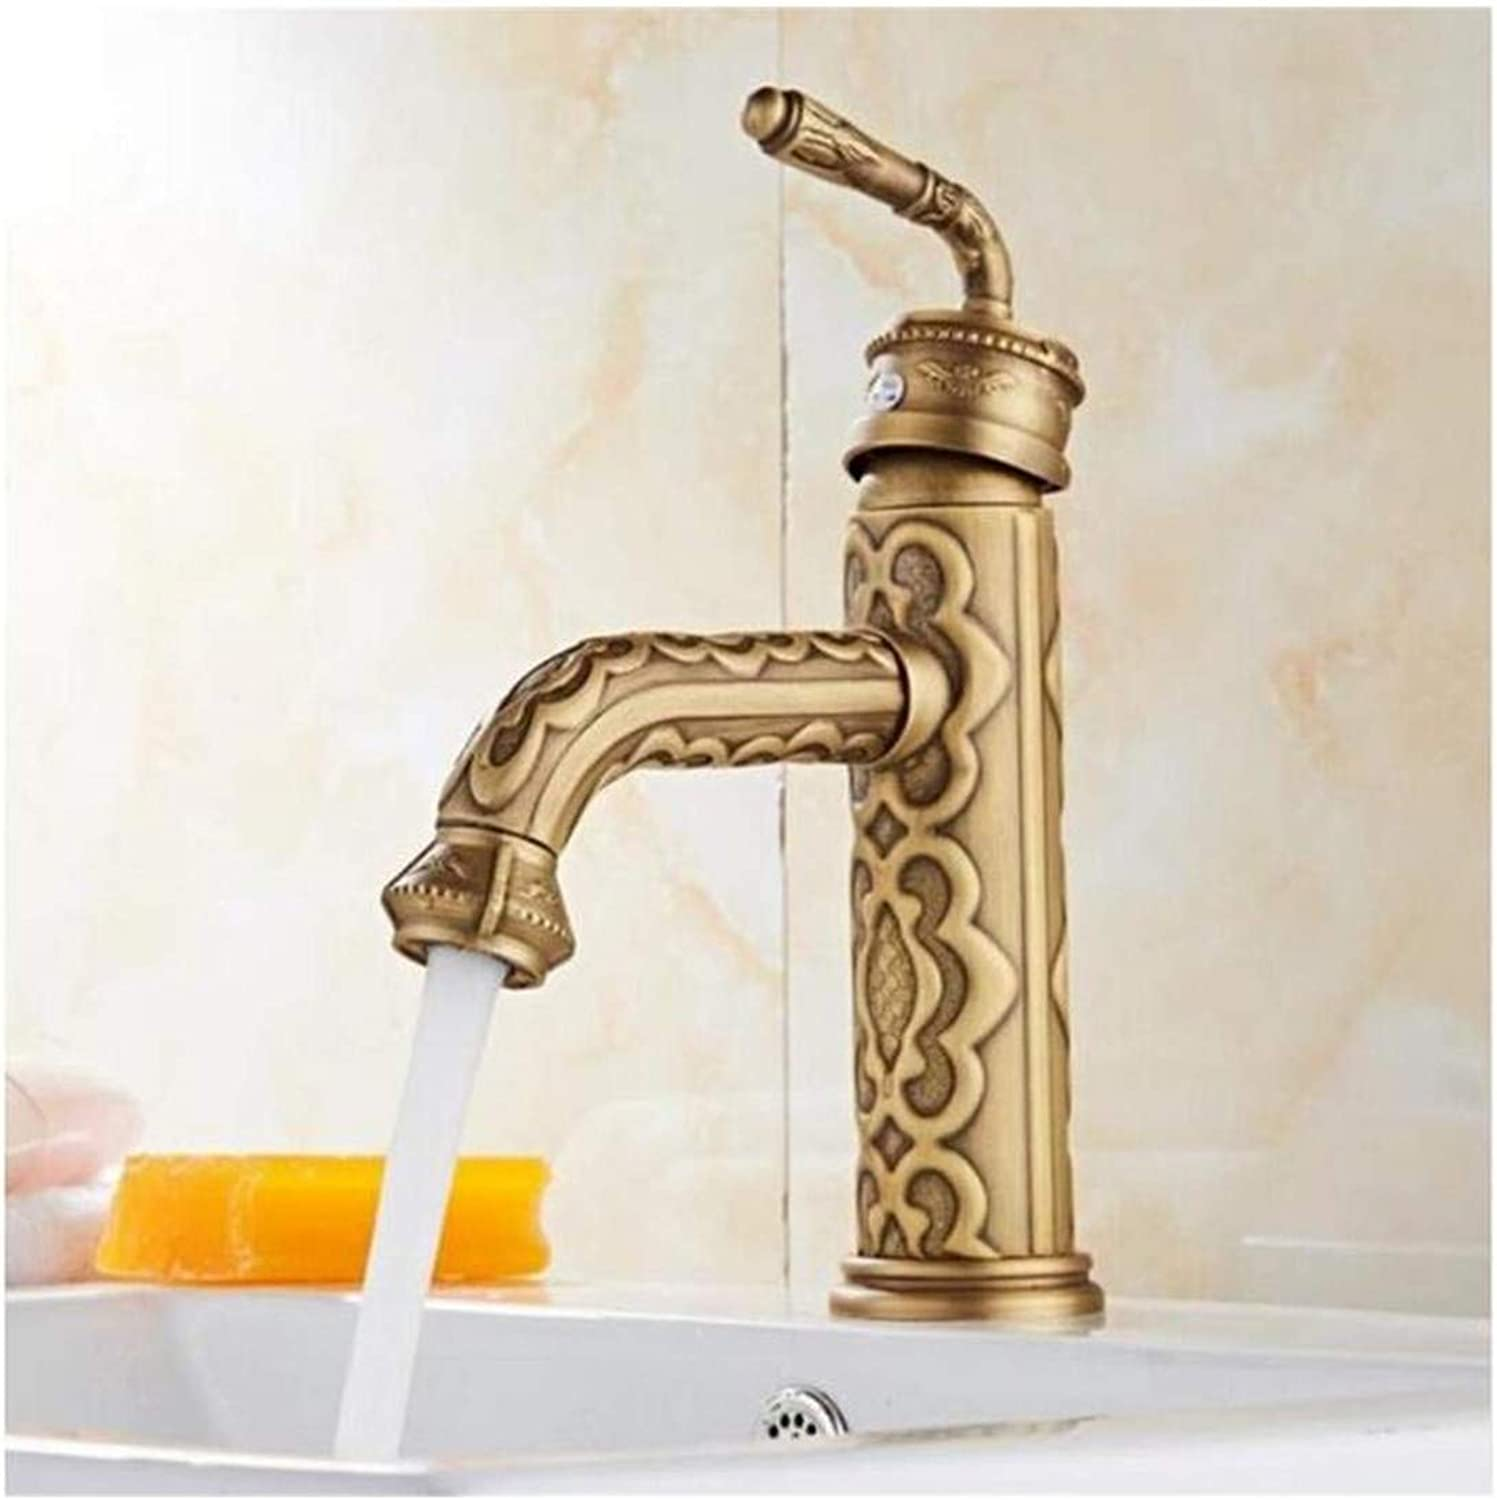 High Quality Vintage Stainless Steel Bathroom Sink Faucet Luxury Basin Mixer Sink Faucet Tap Brass Water Tap